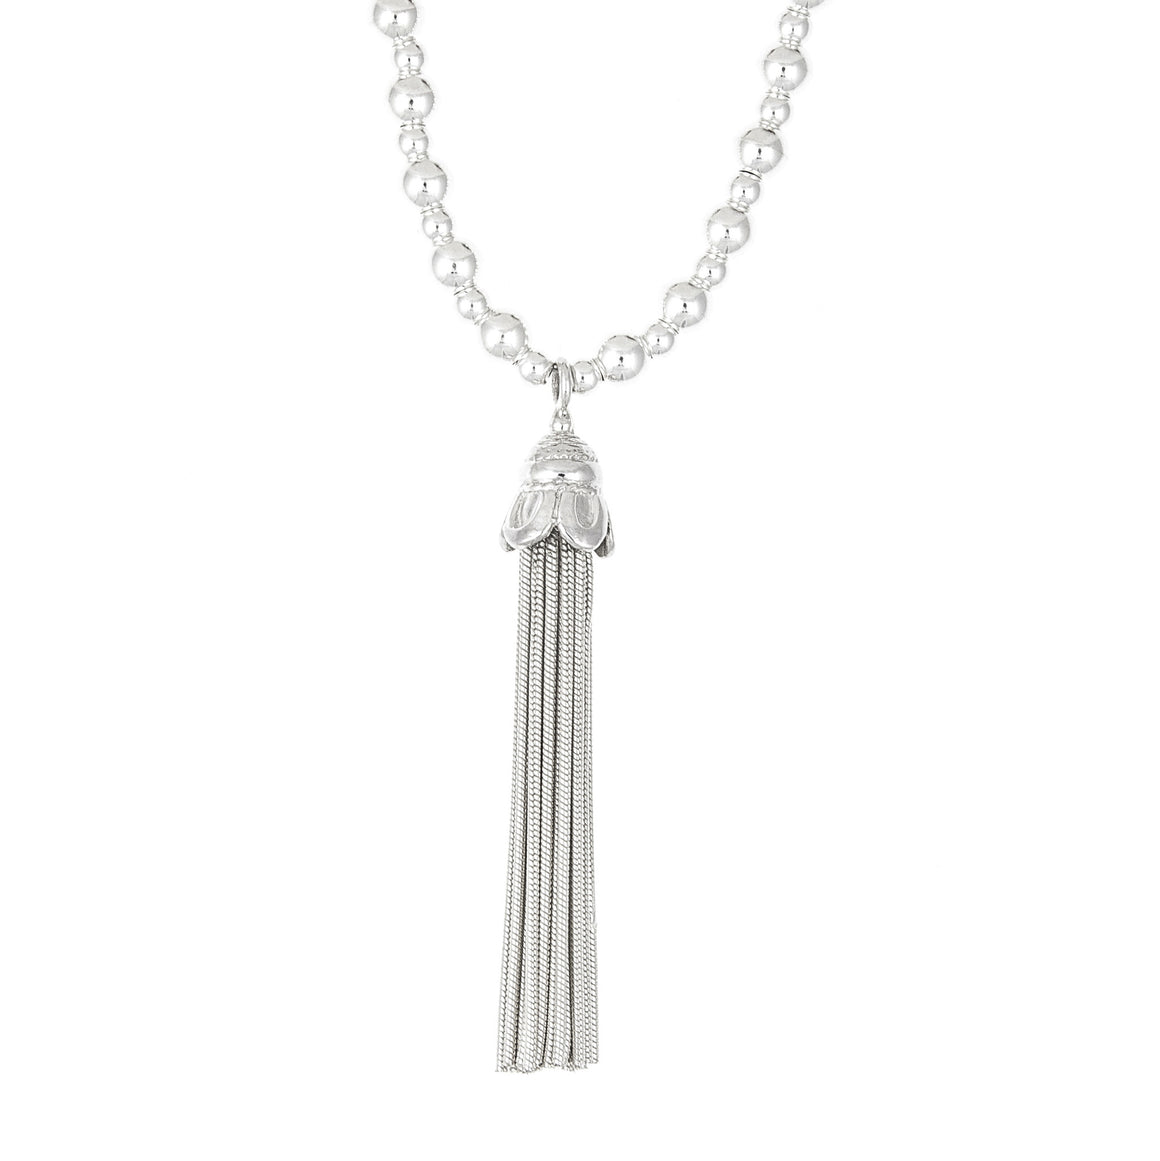 Tassel Medium Ball Necklace - Good Charma